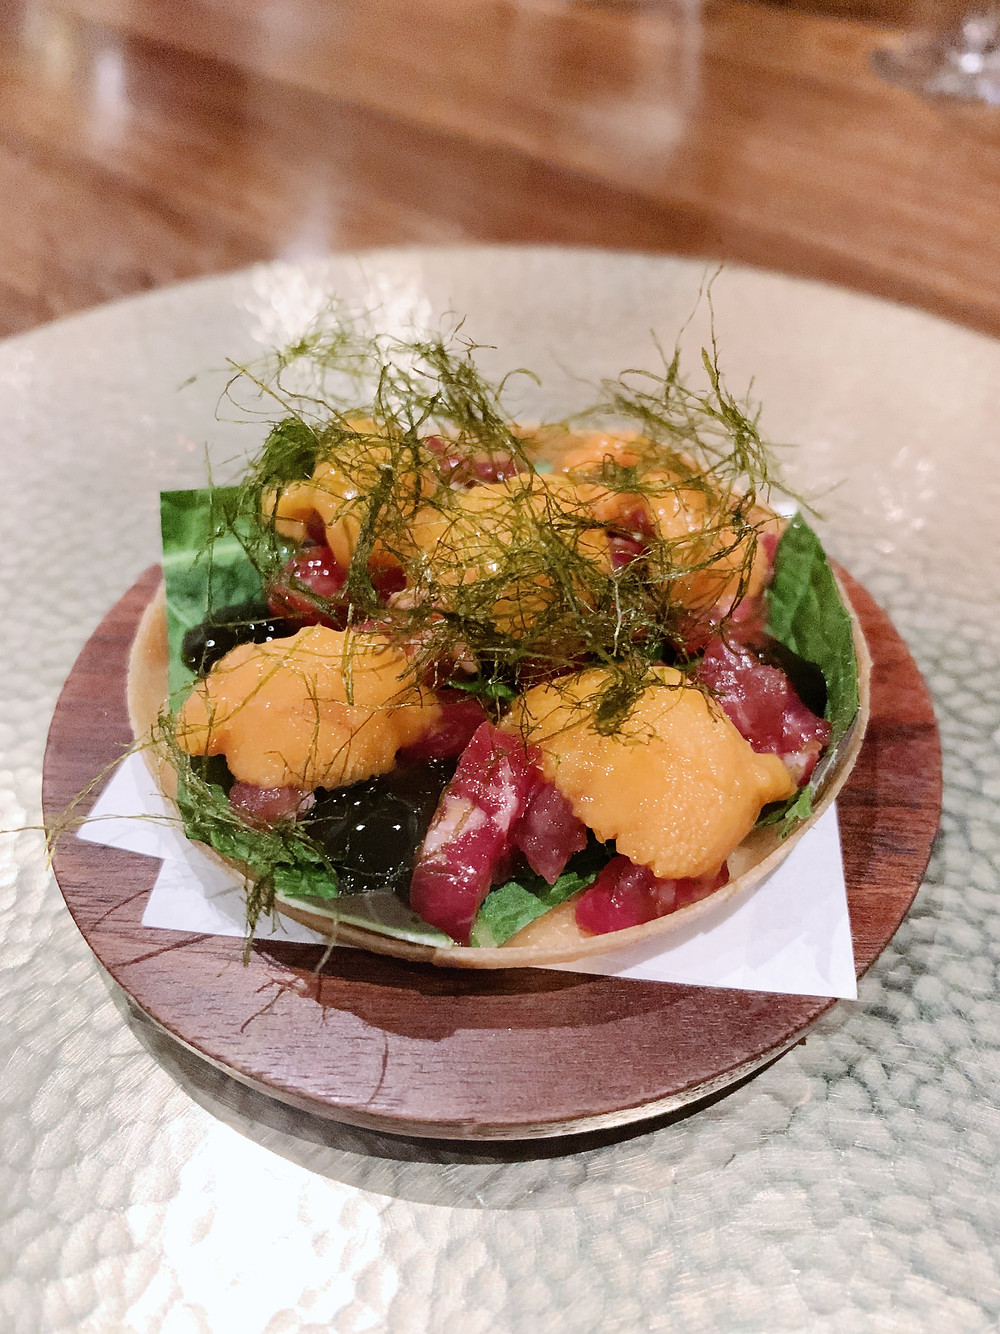 Food at Benu Restaurant by Chef Corey Lee in San Francisco